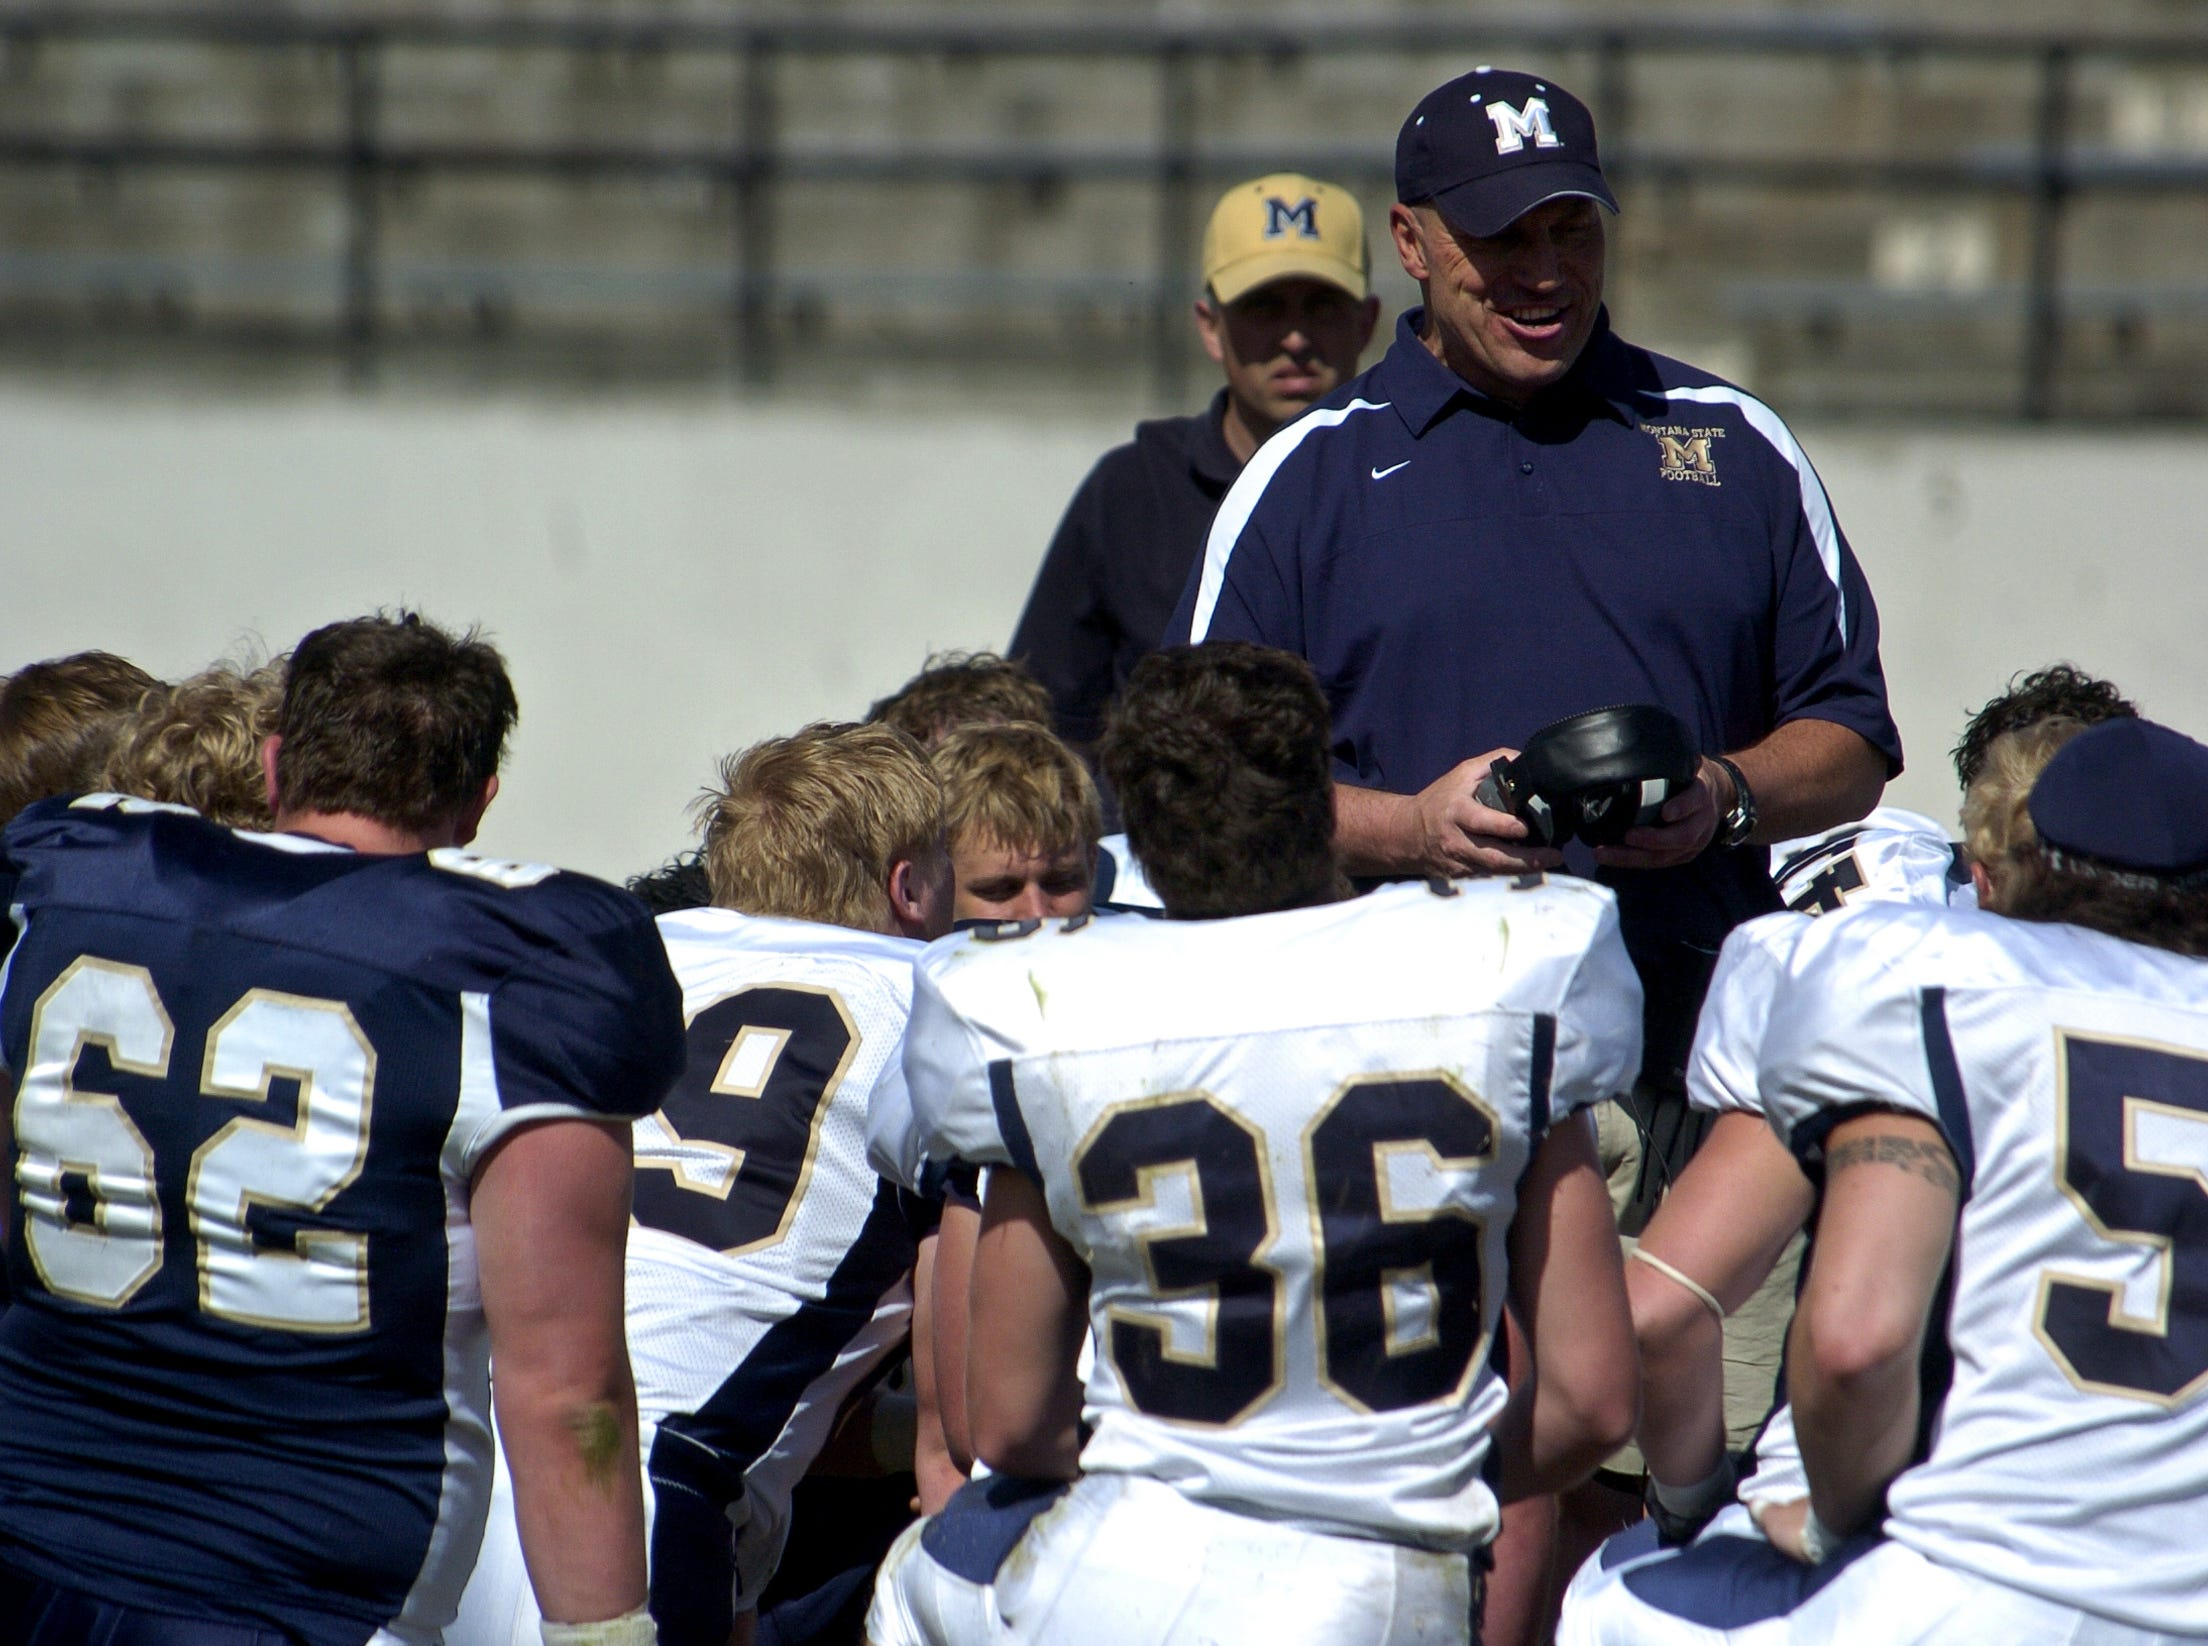 TRIBUNE PHOTO/RION SANDERSMSU head coach Mike Kramer talks to the Bobcats at the end of Saturday's Triangle Classic at Memorial Stadium.